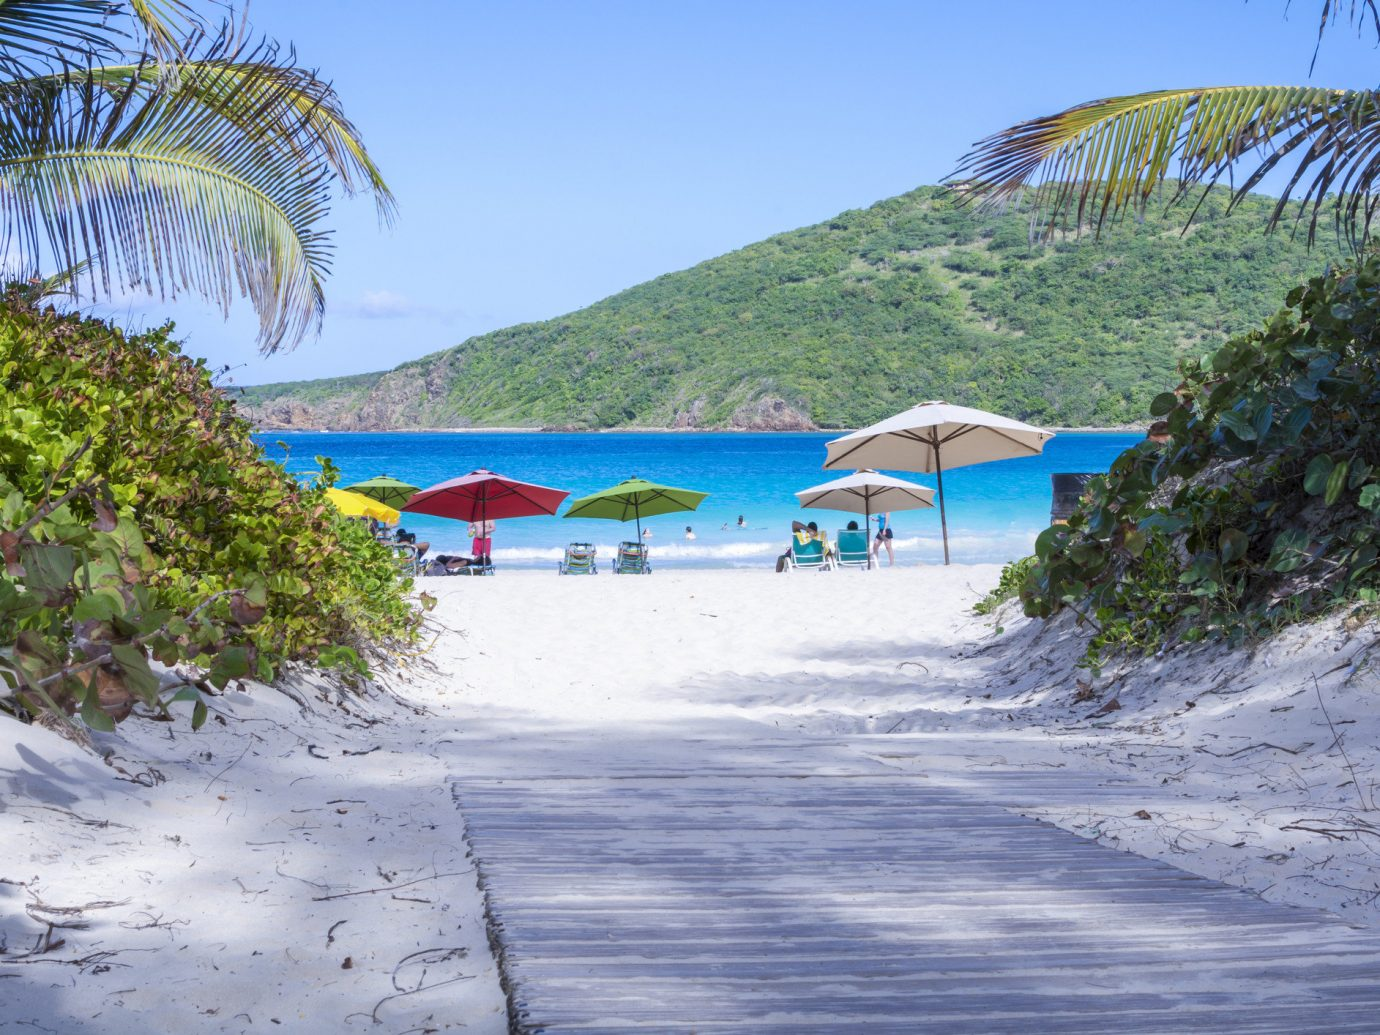 Secret Getaways Trip Ideas outdoor tree water Beach shore Nature body of water Sea Ocean vacation Coast caribbean bay Lagoon tropics Island Resort cove lined day